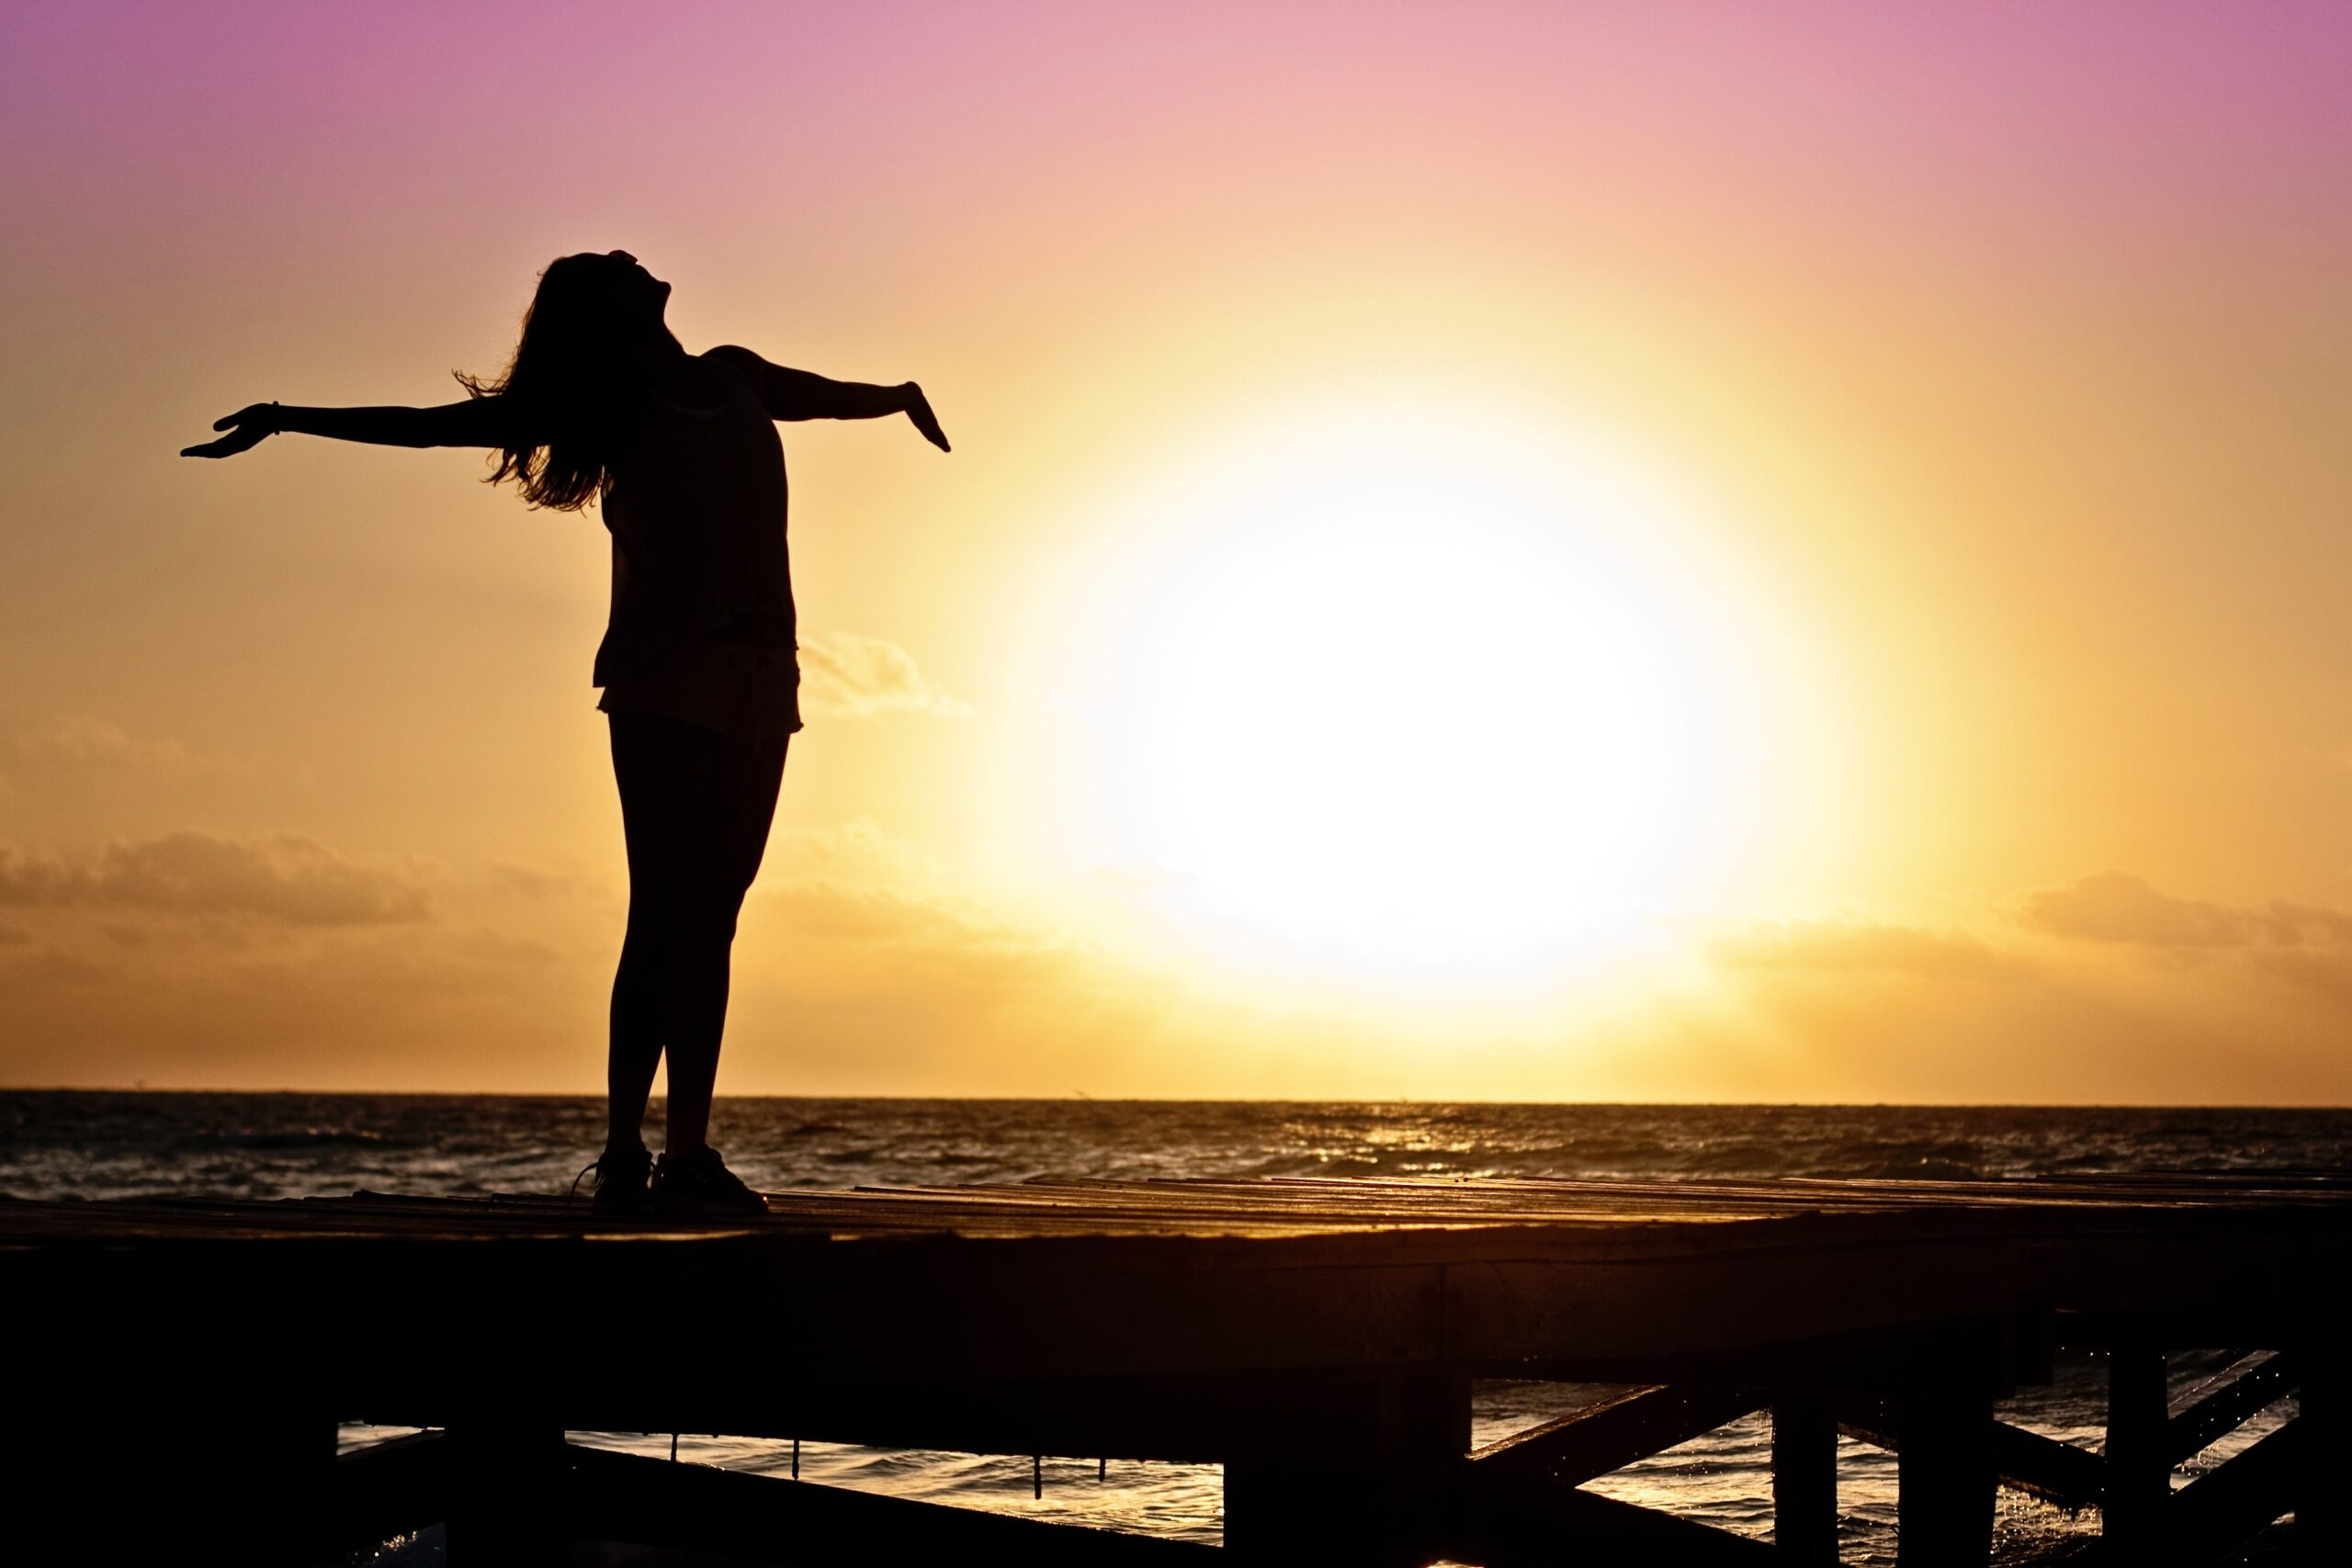 woman leaning back with her arms open on the beach at sunset